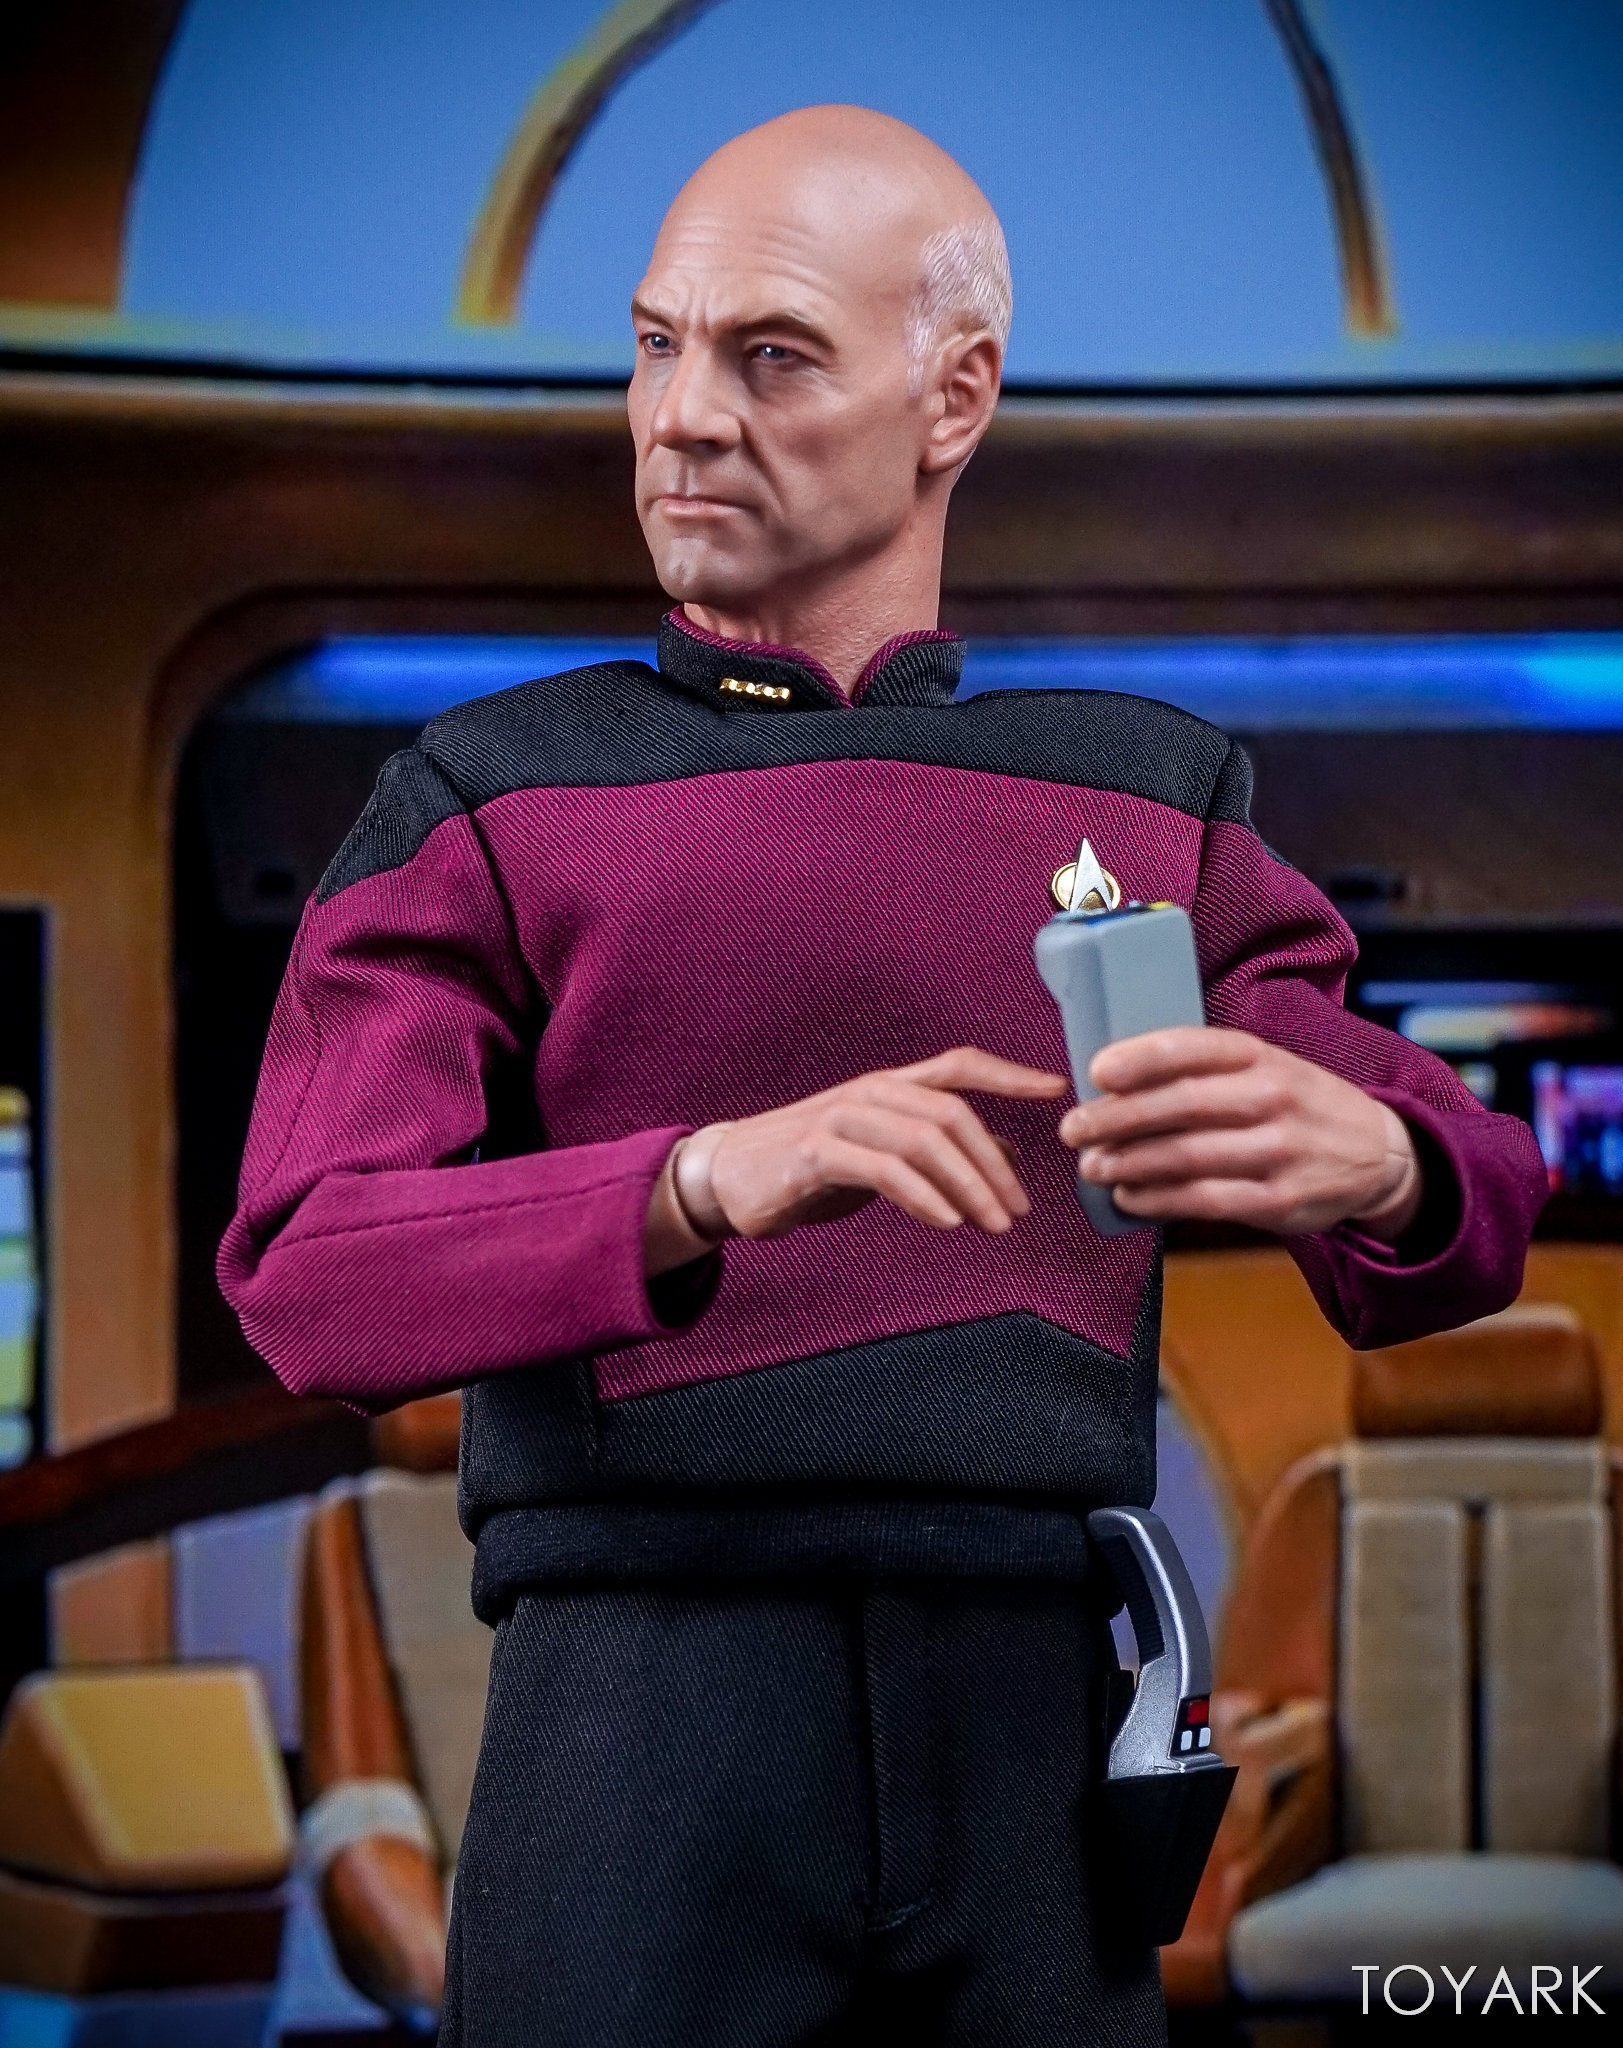 http://news.toyark.com/wp-content/uploads/sites/4/2017/10/Qmx-Star-Trek-TNG-Captain-Picard-058.jpg